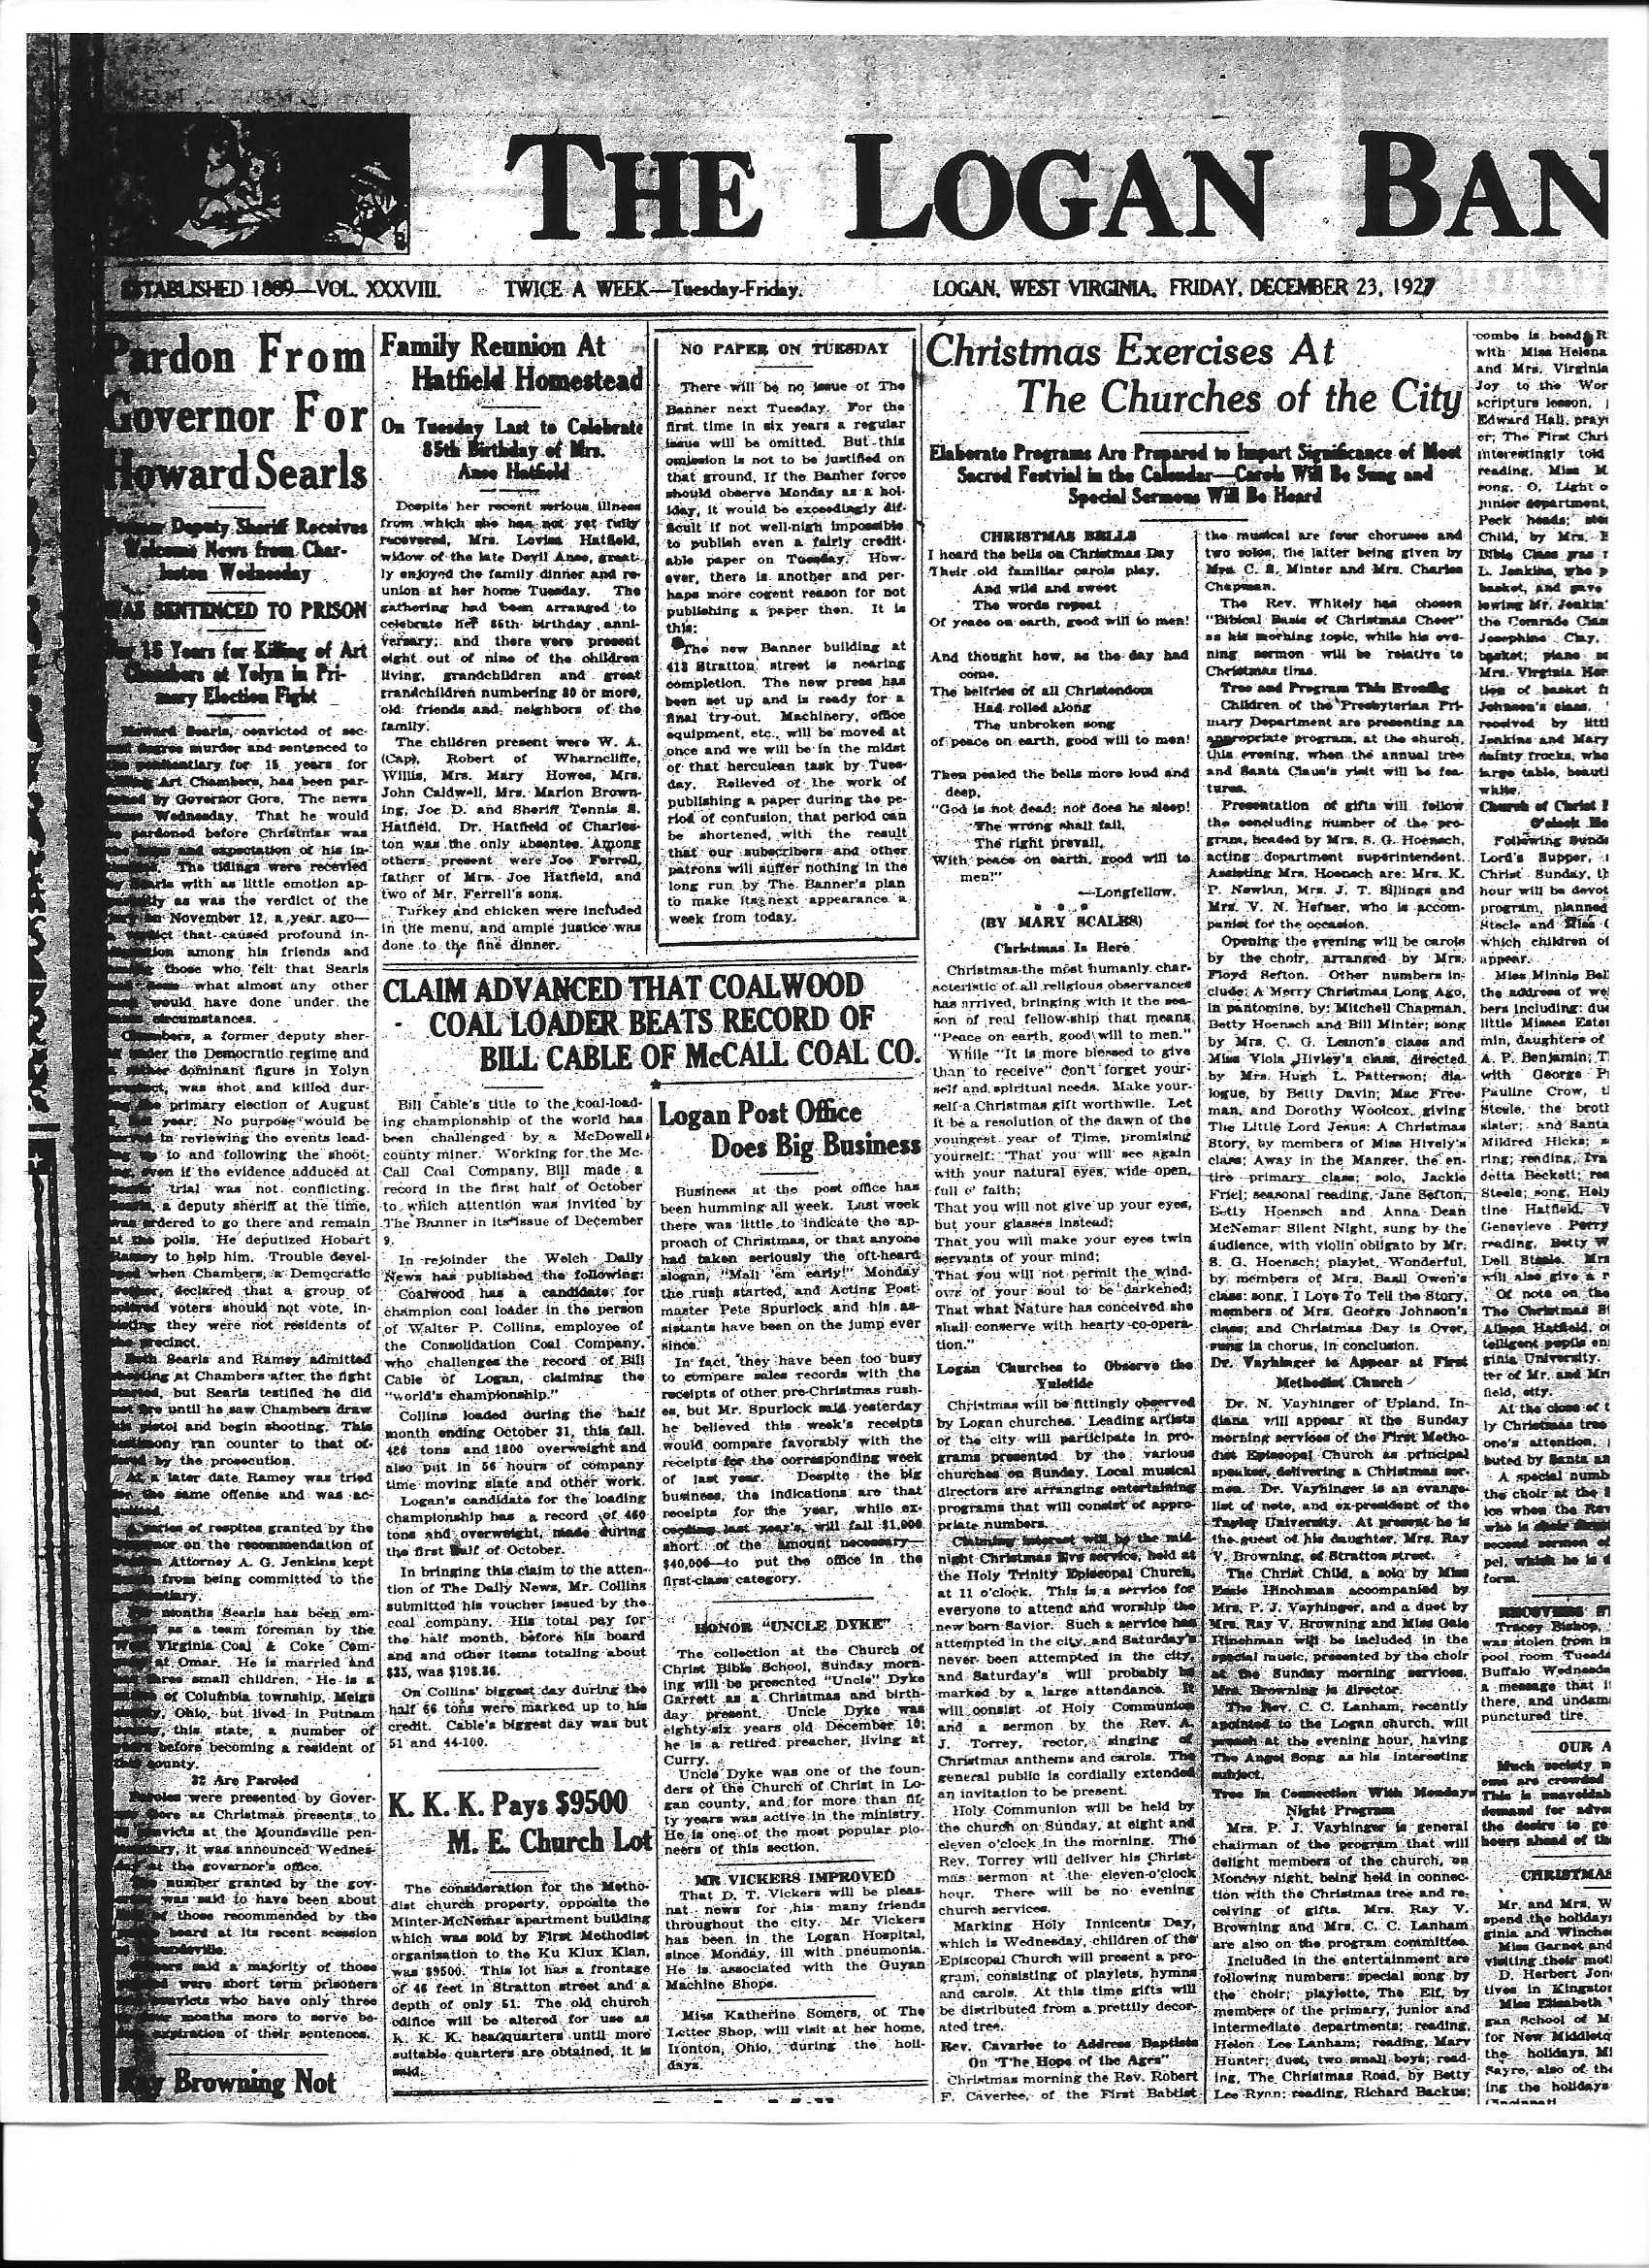 1927 Logan Banner Article describing the Klan's purchase of the property  from the church.